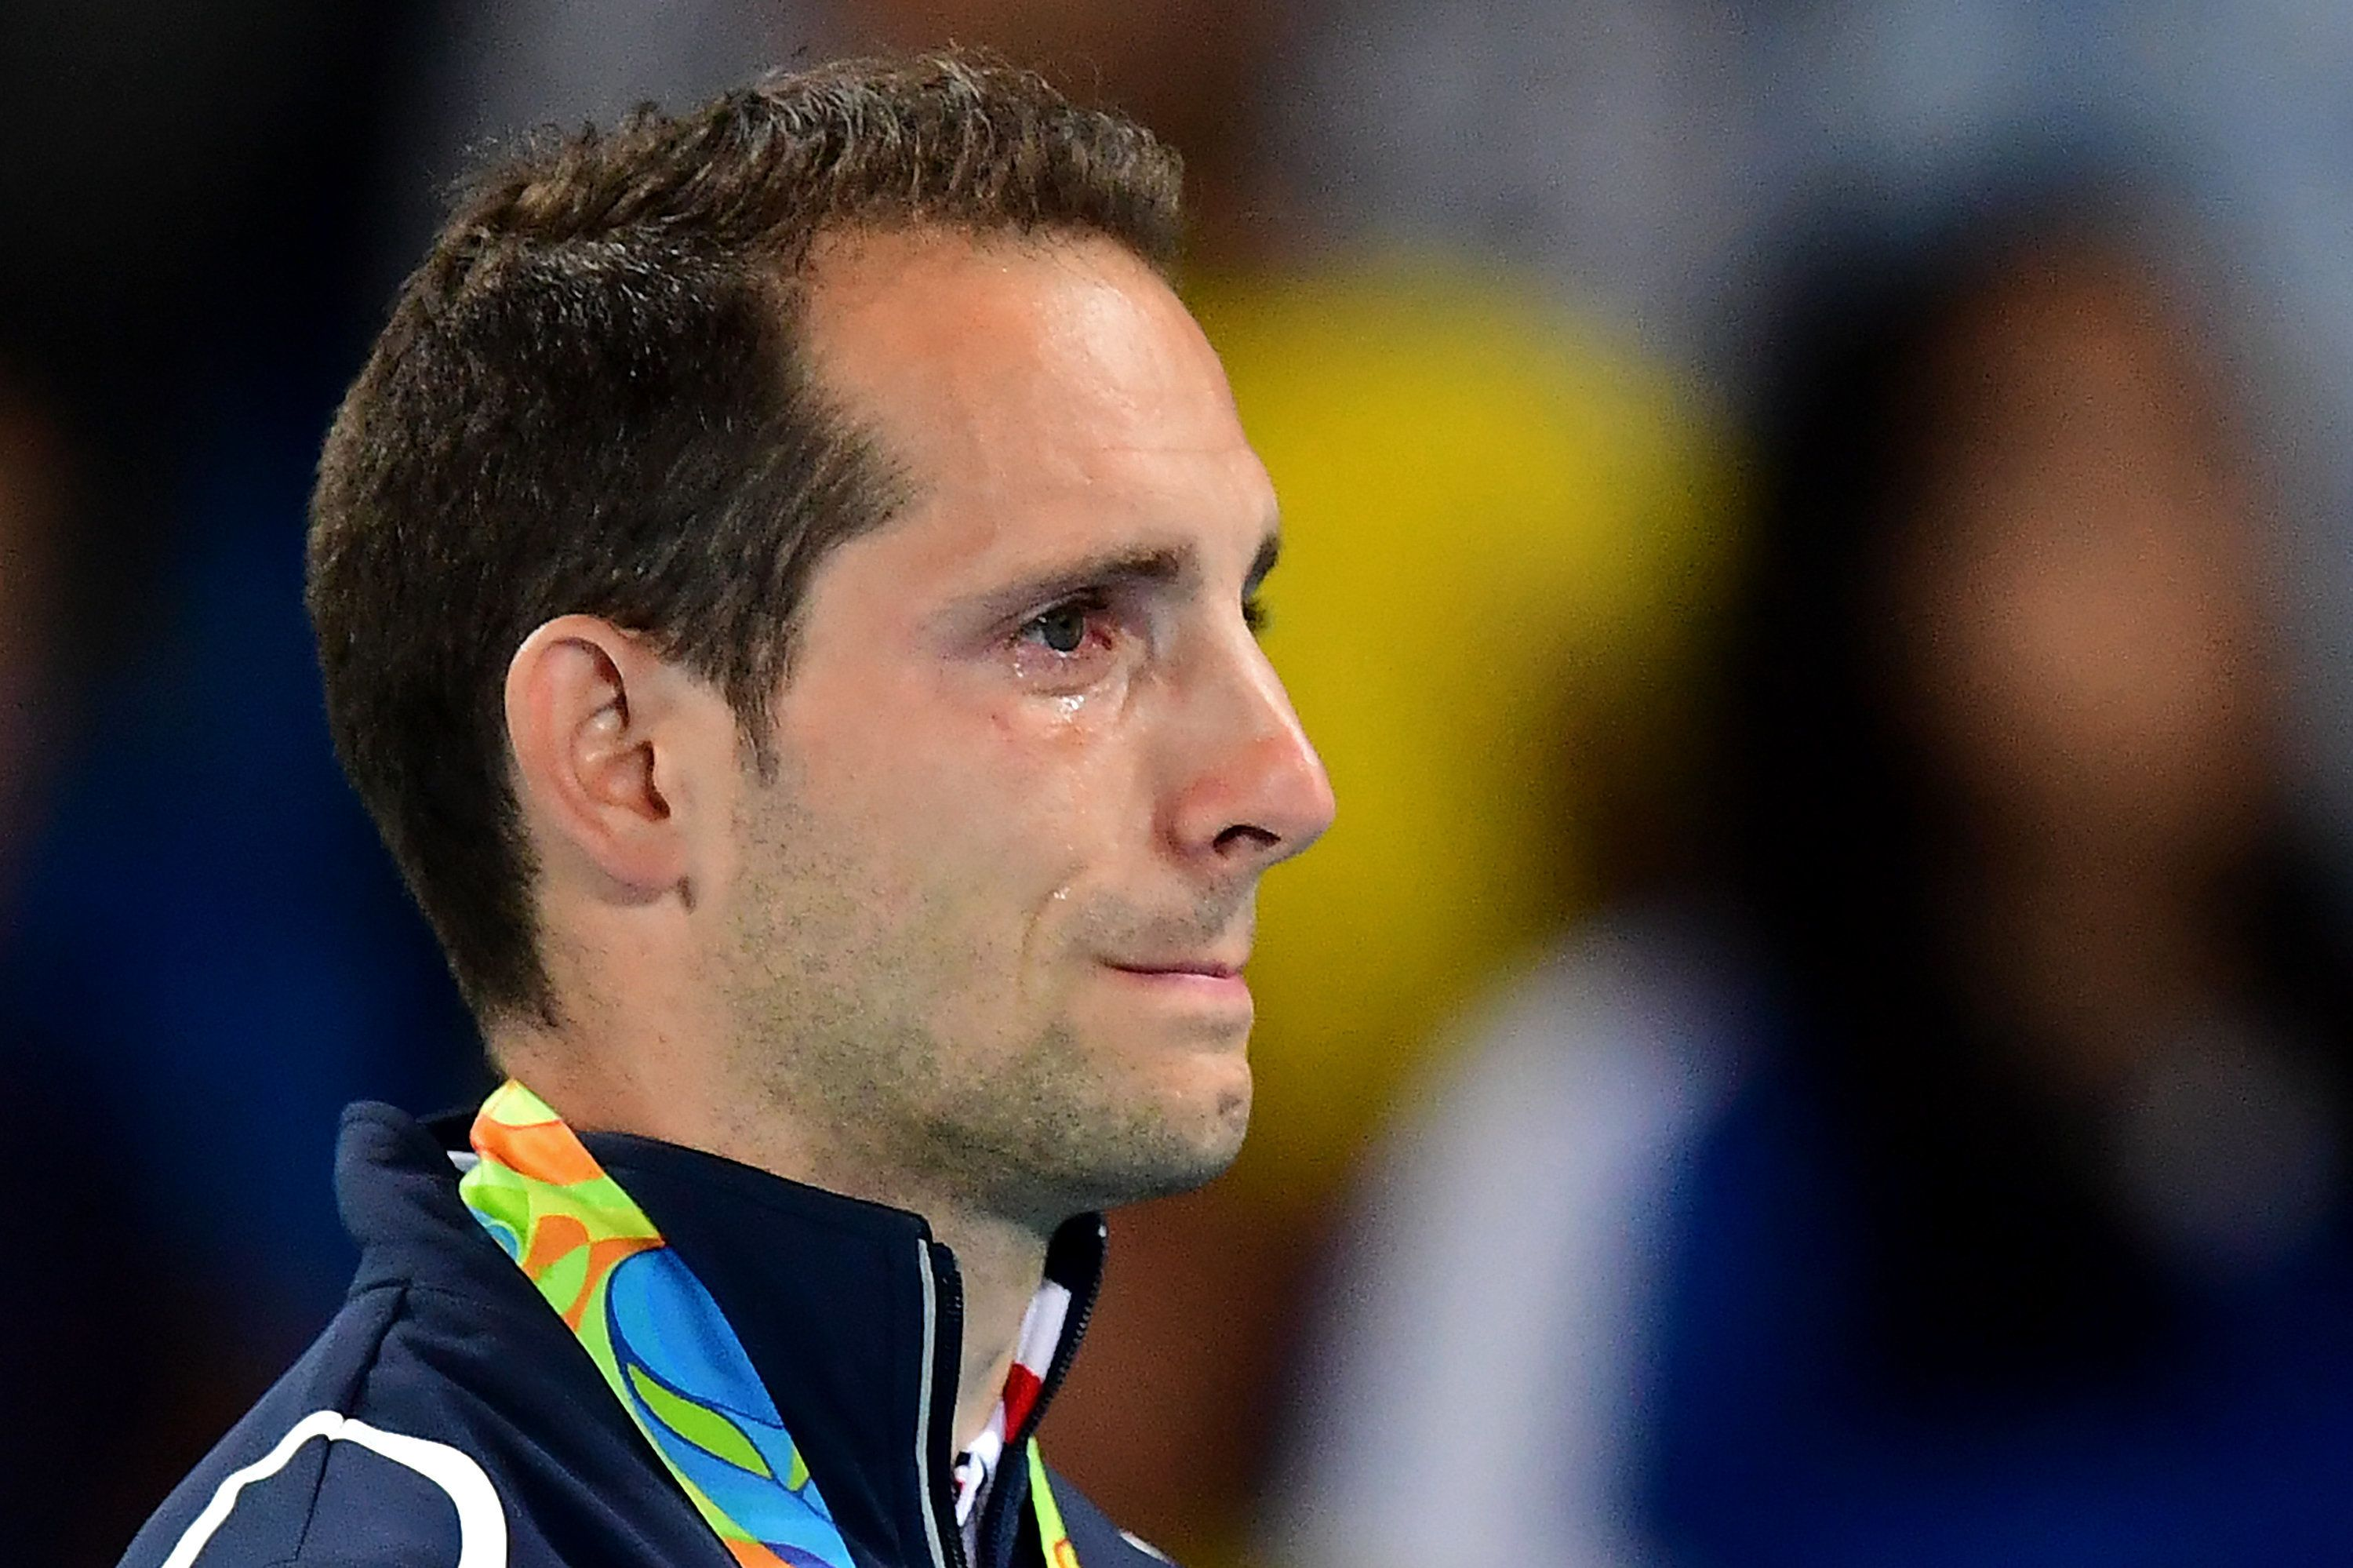 Renaud Lavillenie cries on the podium as the crowd boos him for the second straight night.